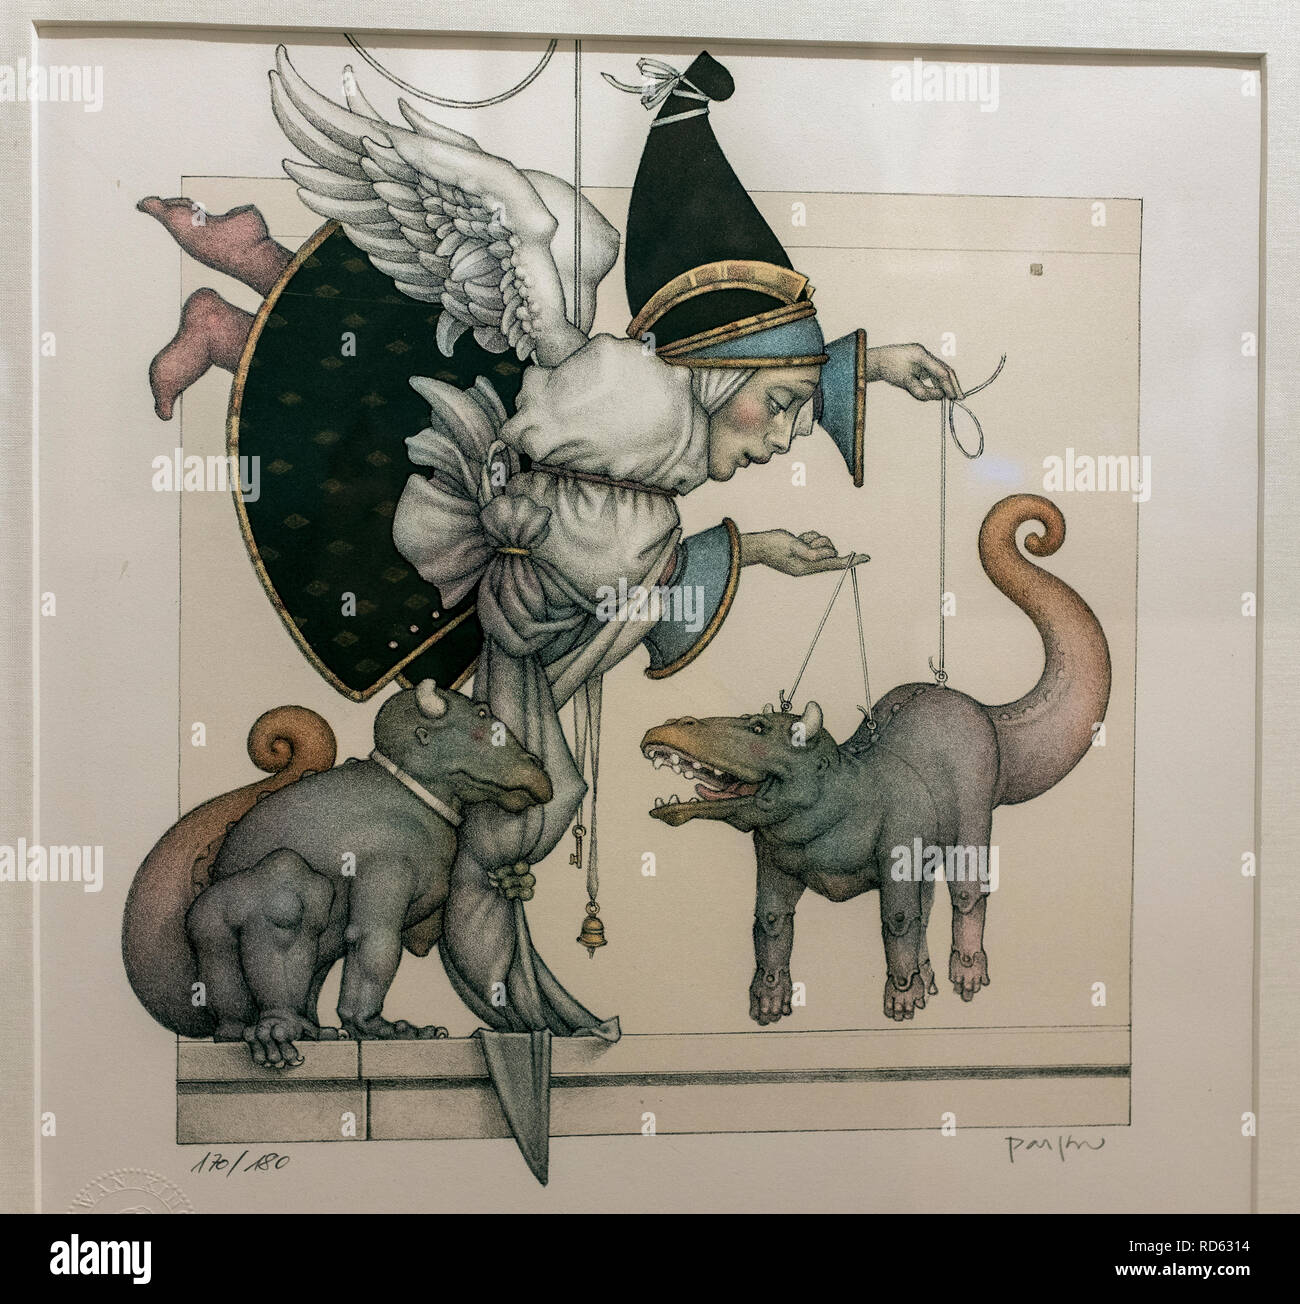 Michael Parkes, magical realist painter: (detail) 'The Puppet Collector'hand pulled stone lithograph - Stock Image